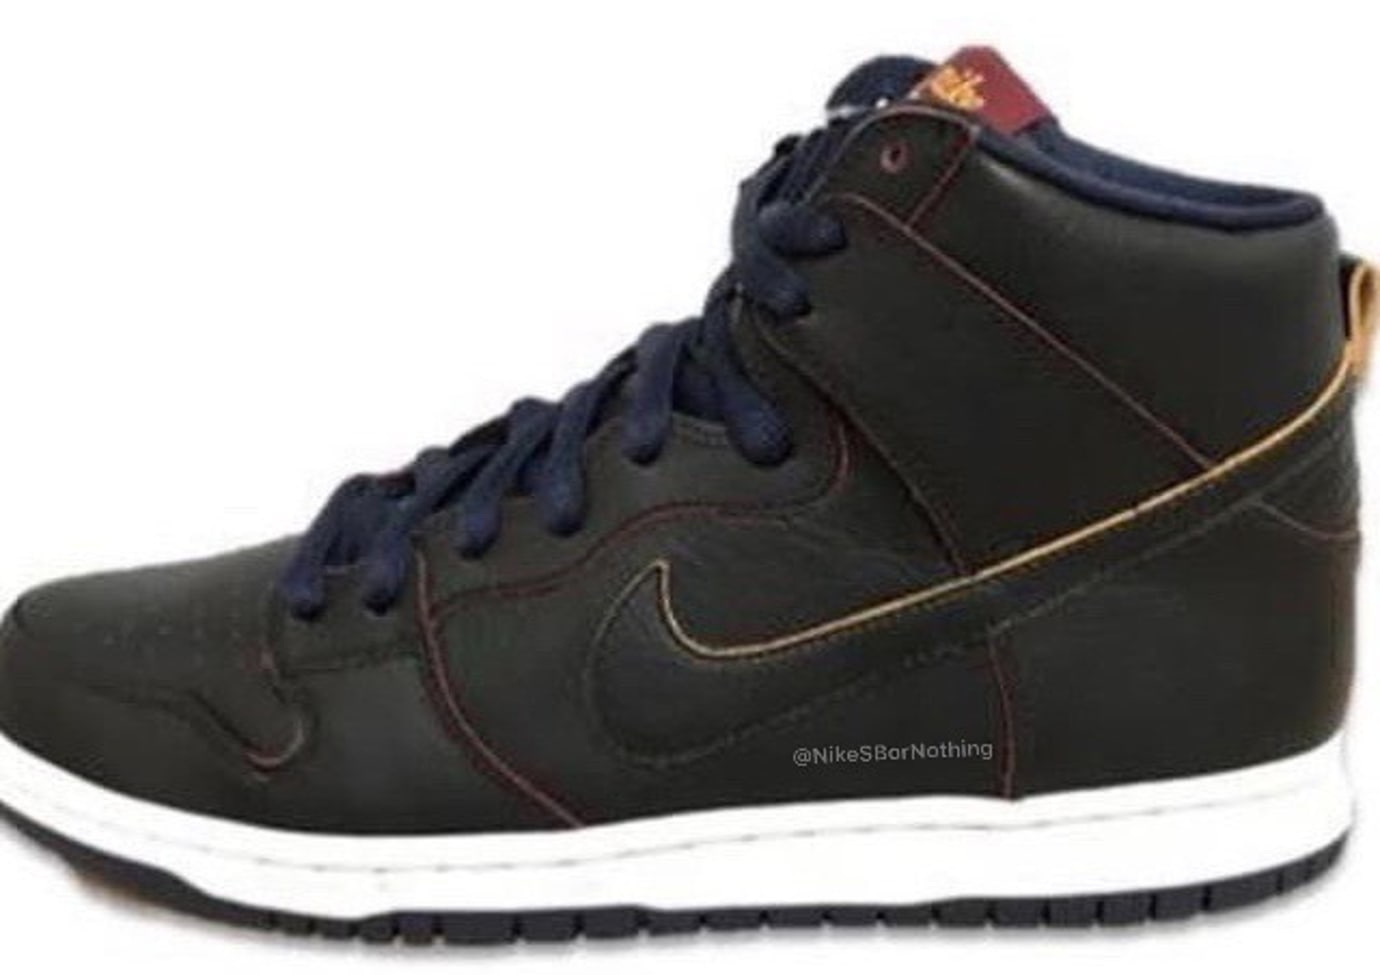 a82e2831c3a0 Nike SB x NBA Collection Part Two Release Date